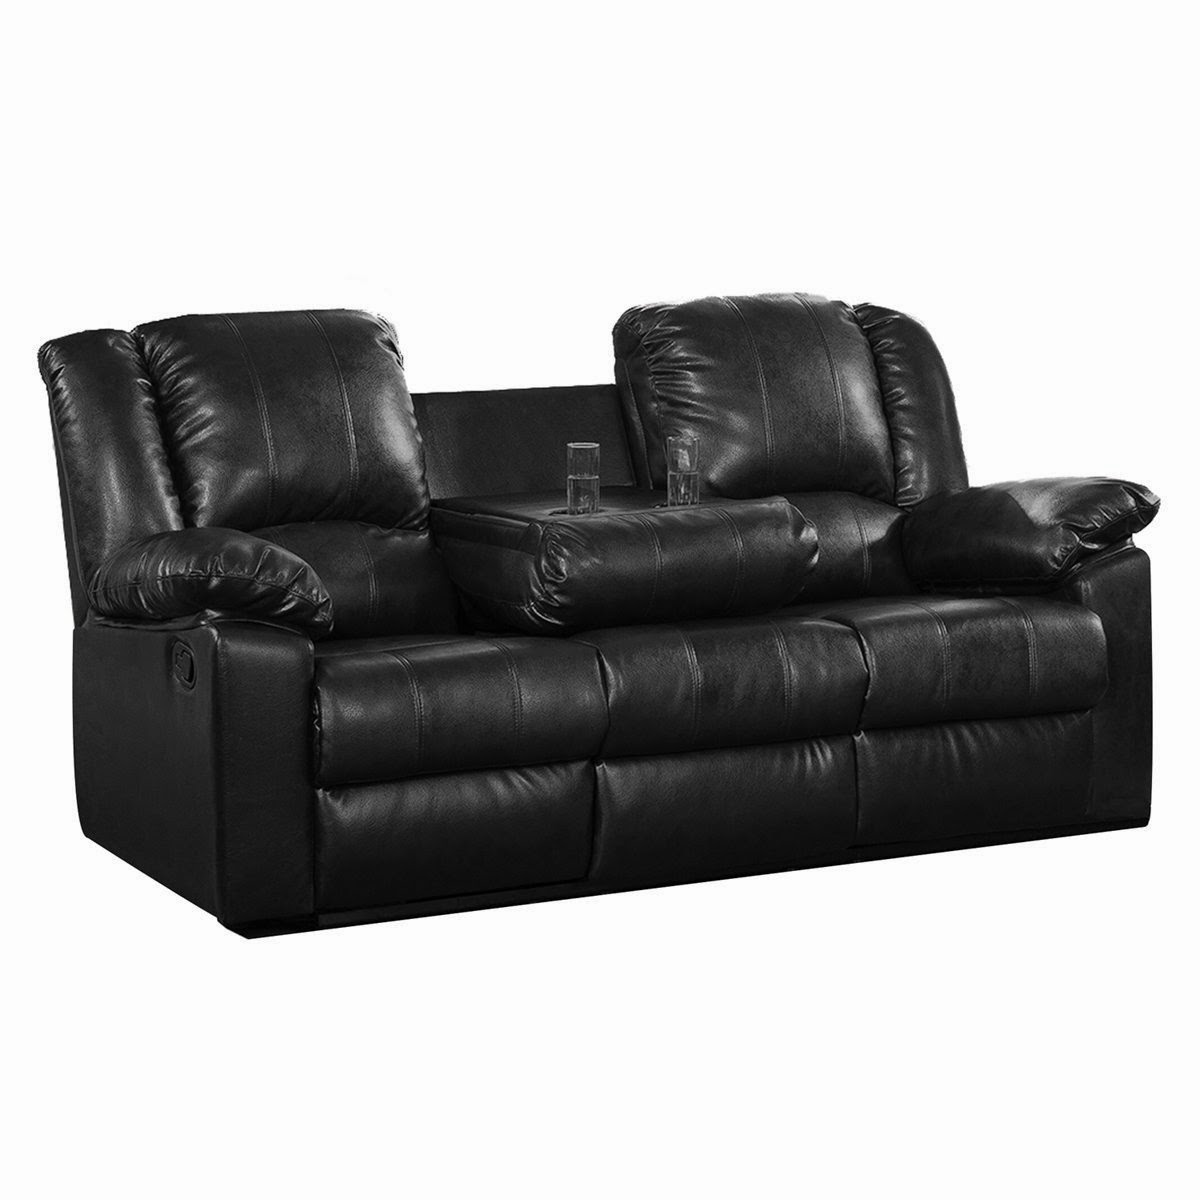 The best reclining leather sofa reviews leather reclining sofa with fold down table Leather reclining sofa loveseat